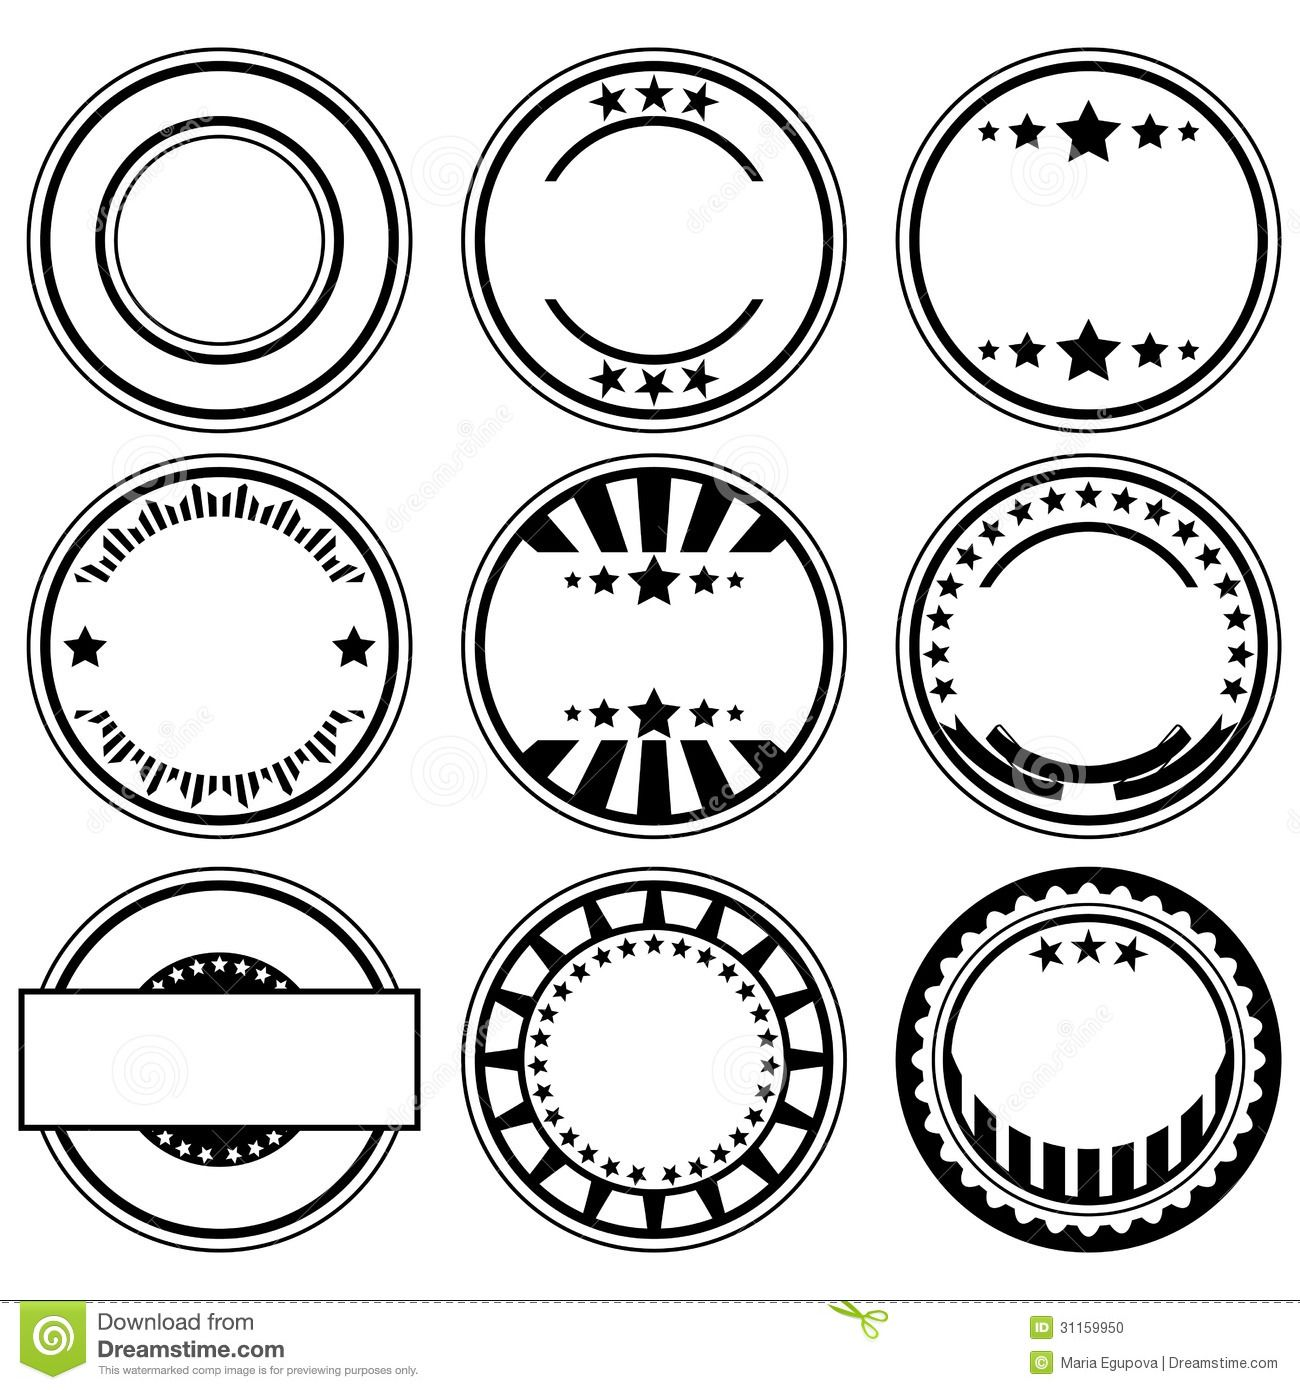 Rubber Stamps Download From Over 42 Million High Quality Stock